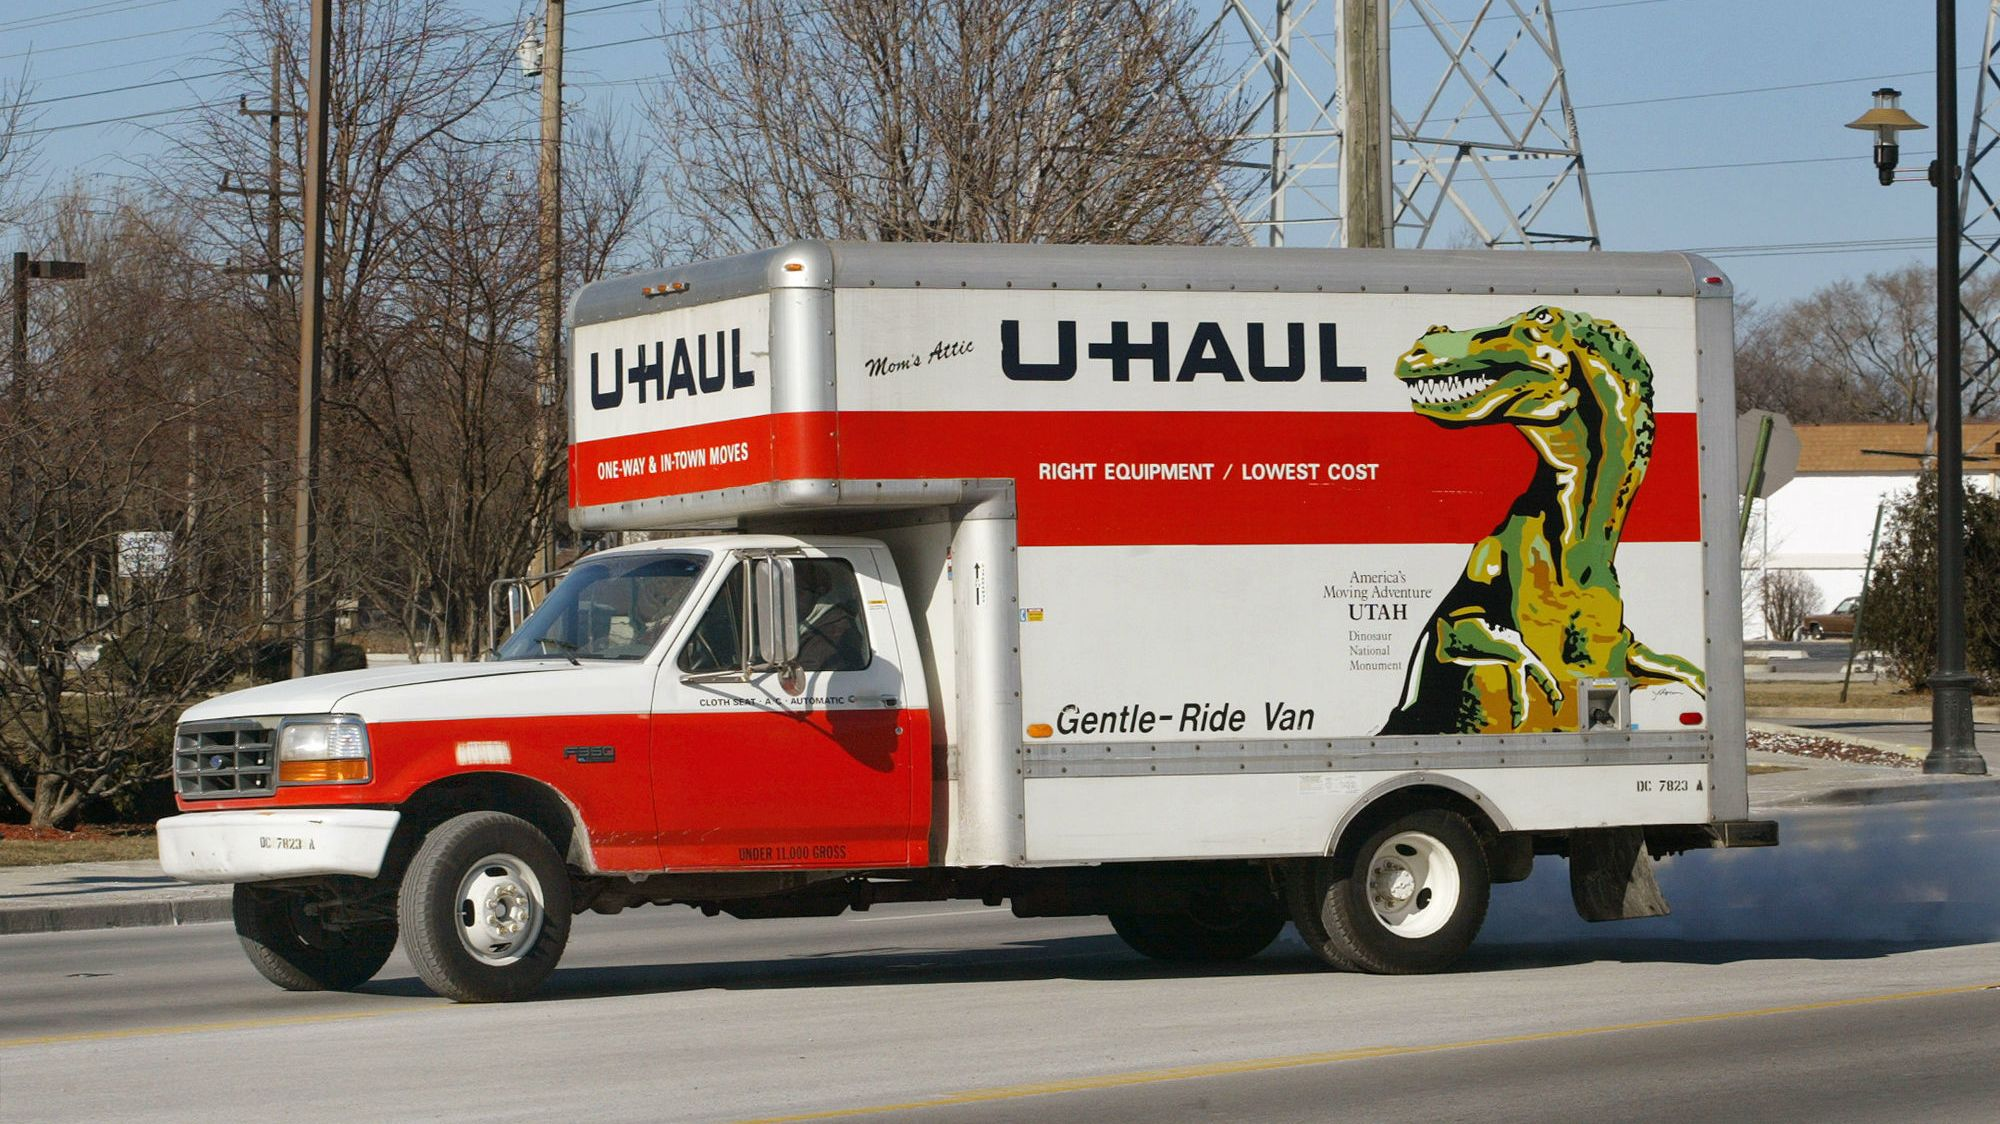 14 things you might not know about u-haul | mental floss